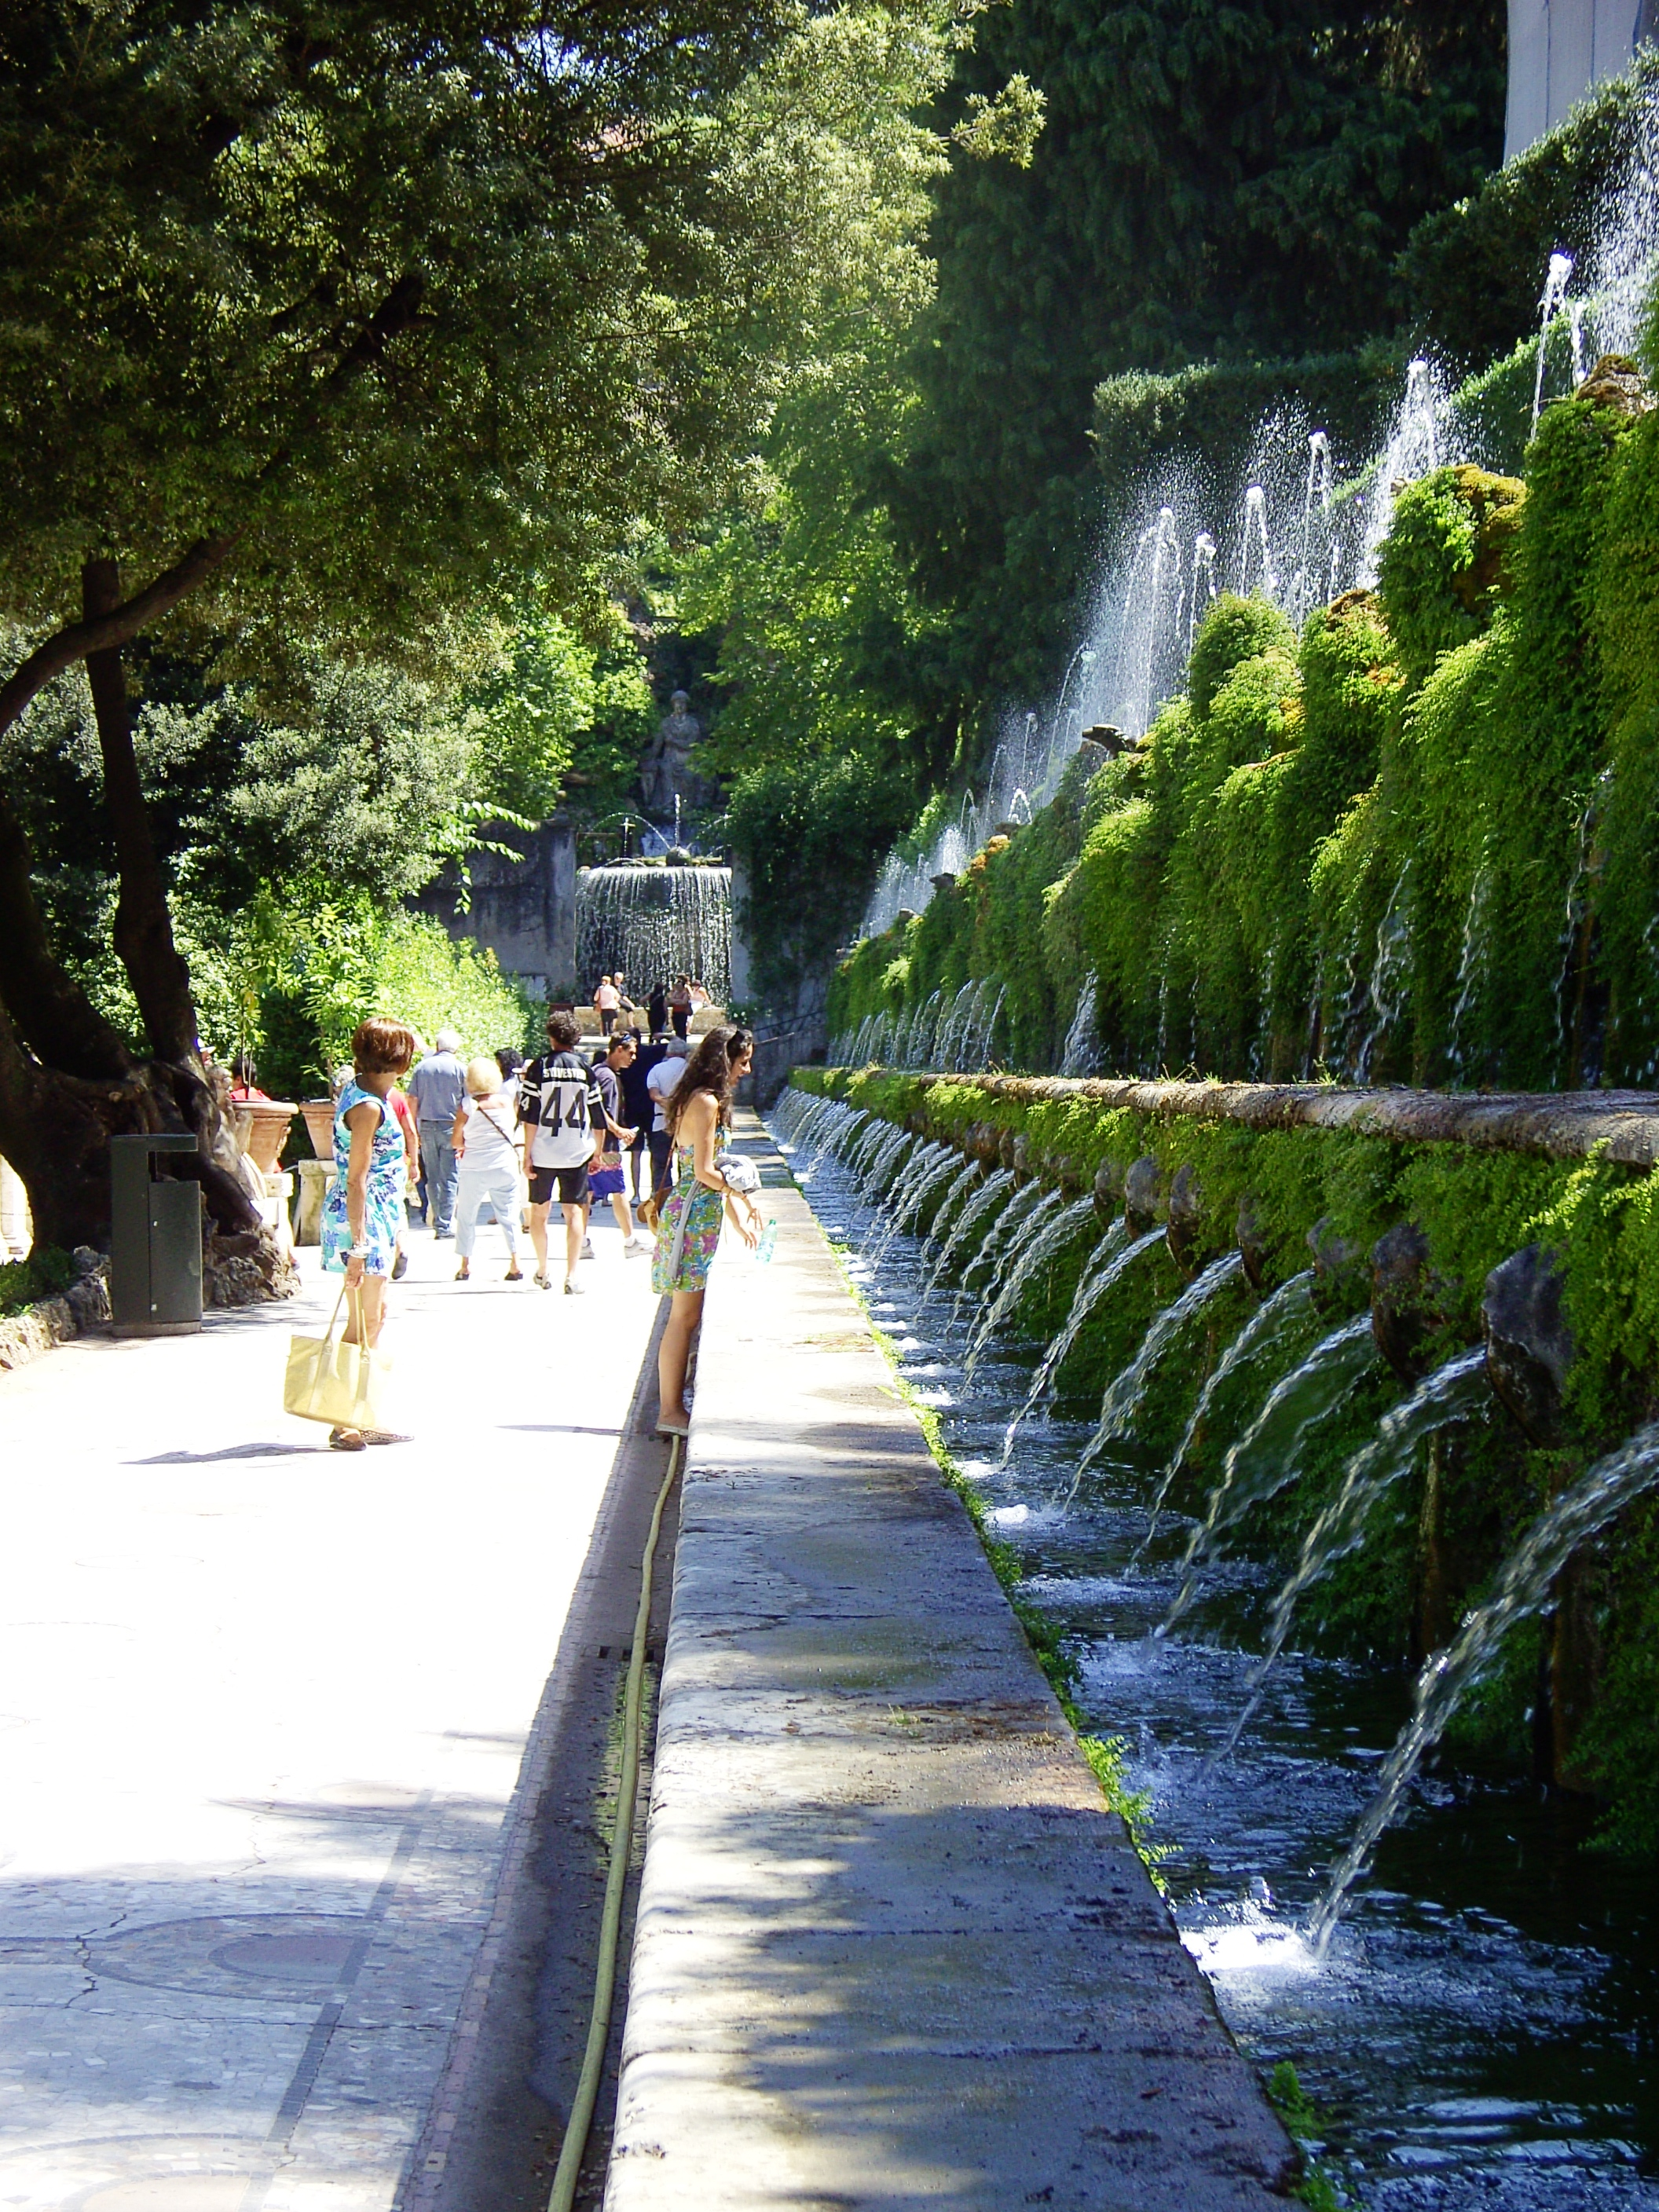 Terrace of a Thousand Fountains Villa D'Este